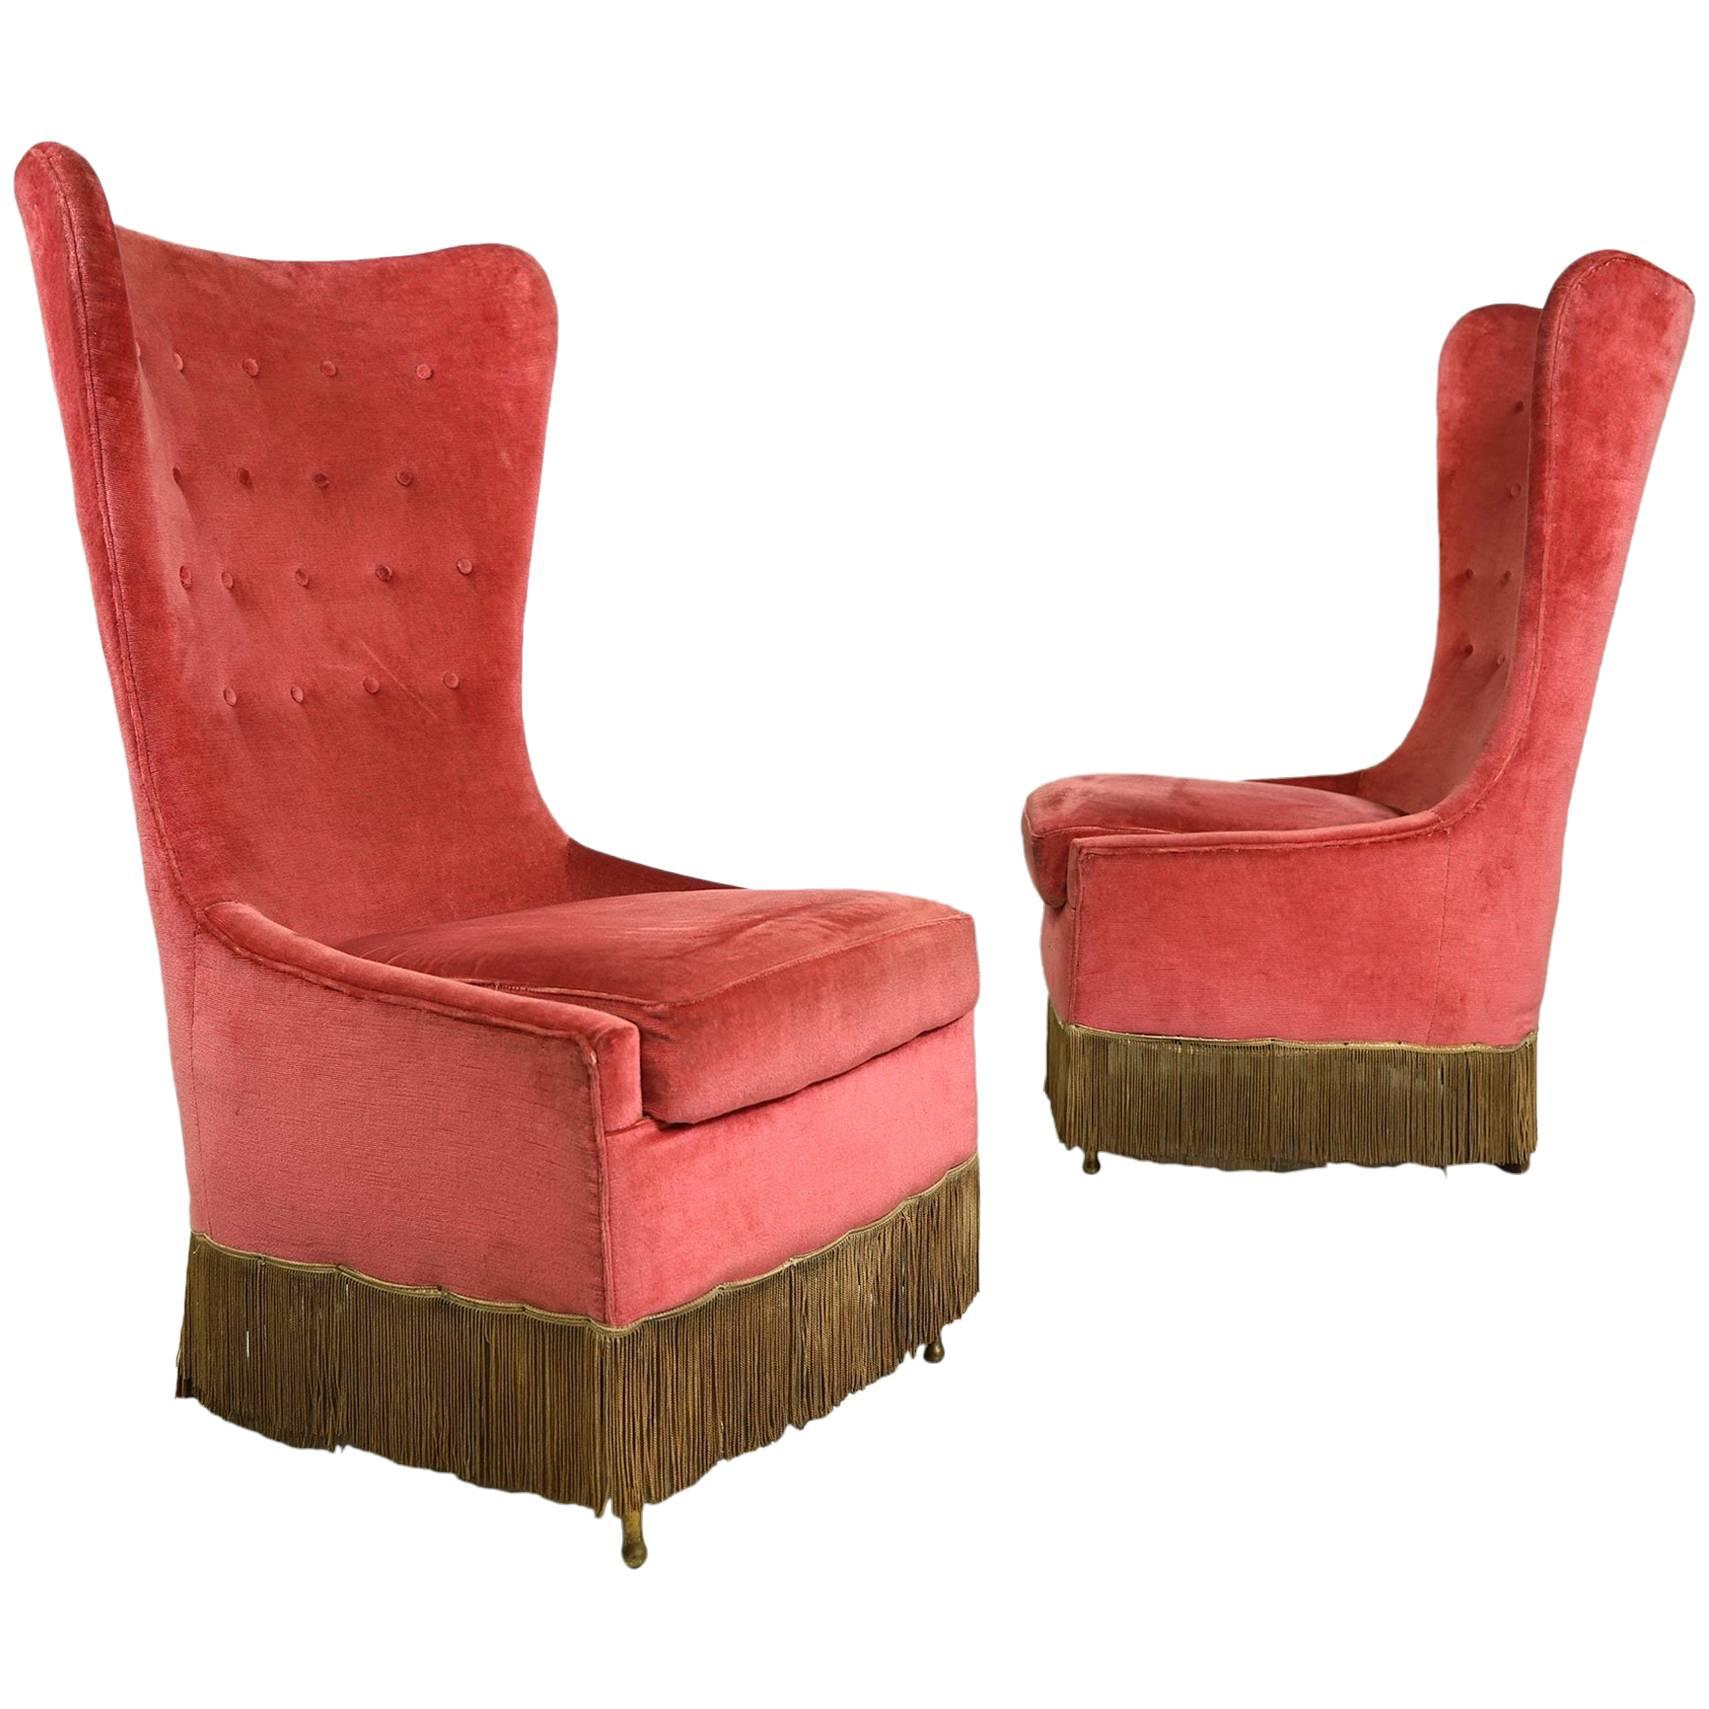 Pair of velvet Easy Chairs by Cesare Lacca, circa 1950